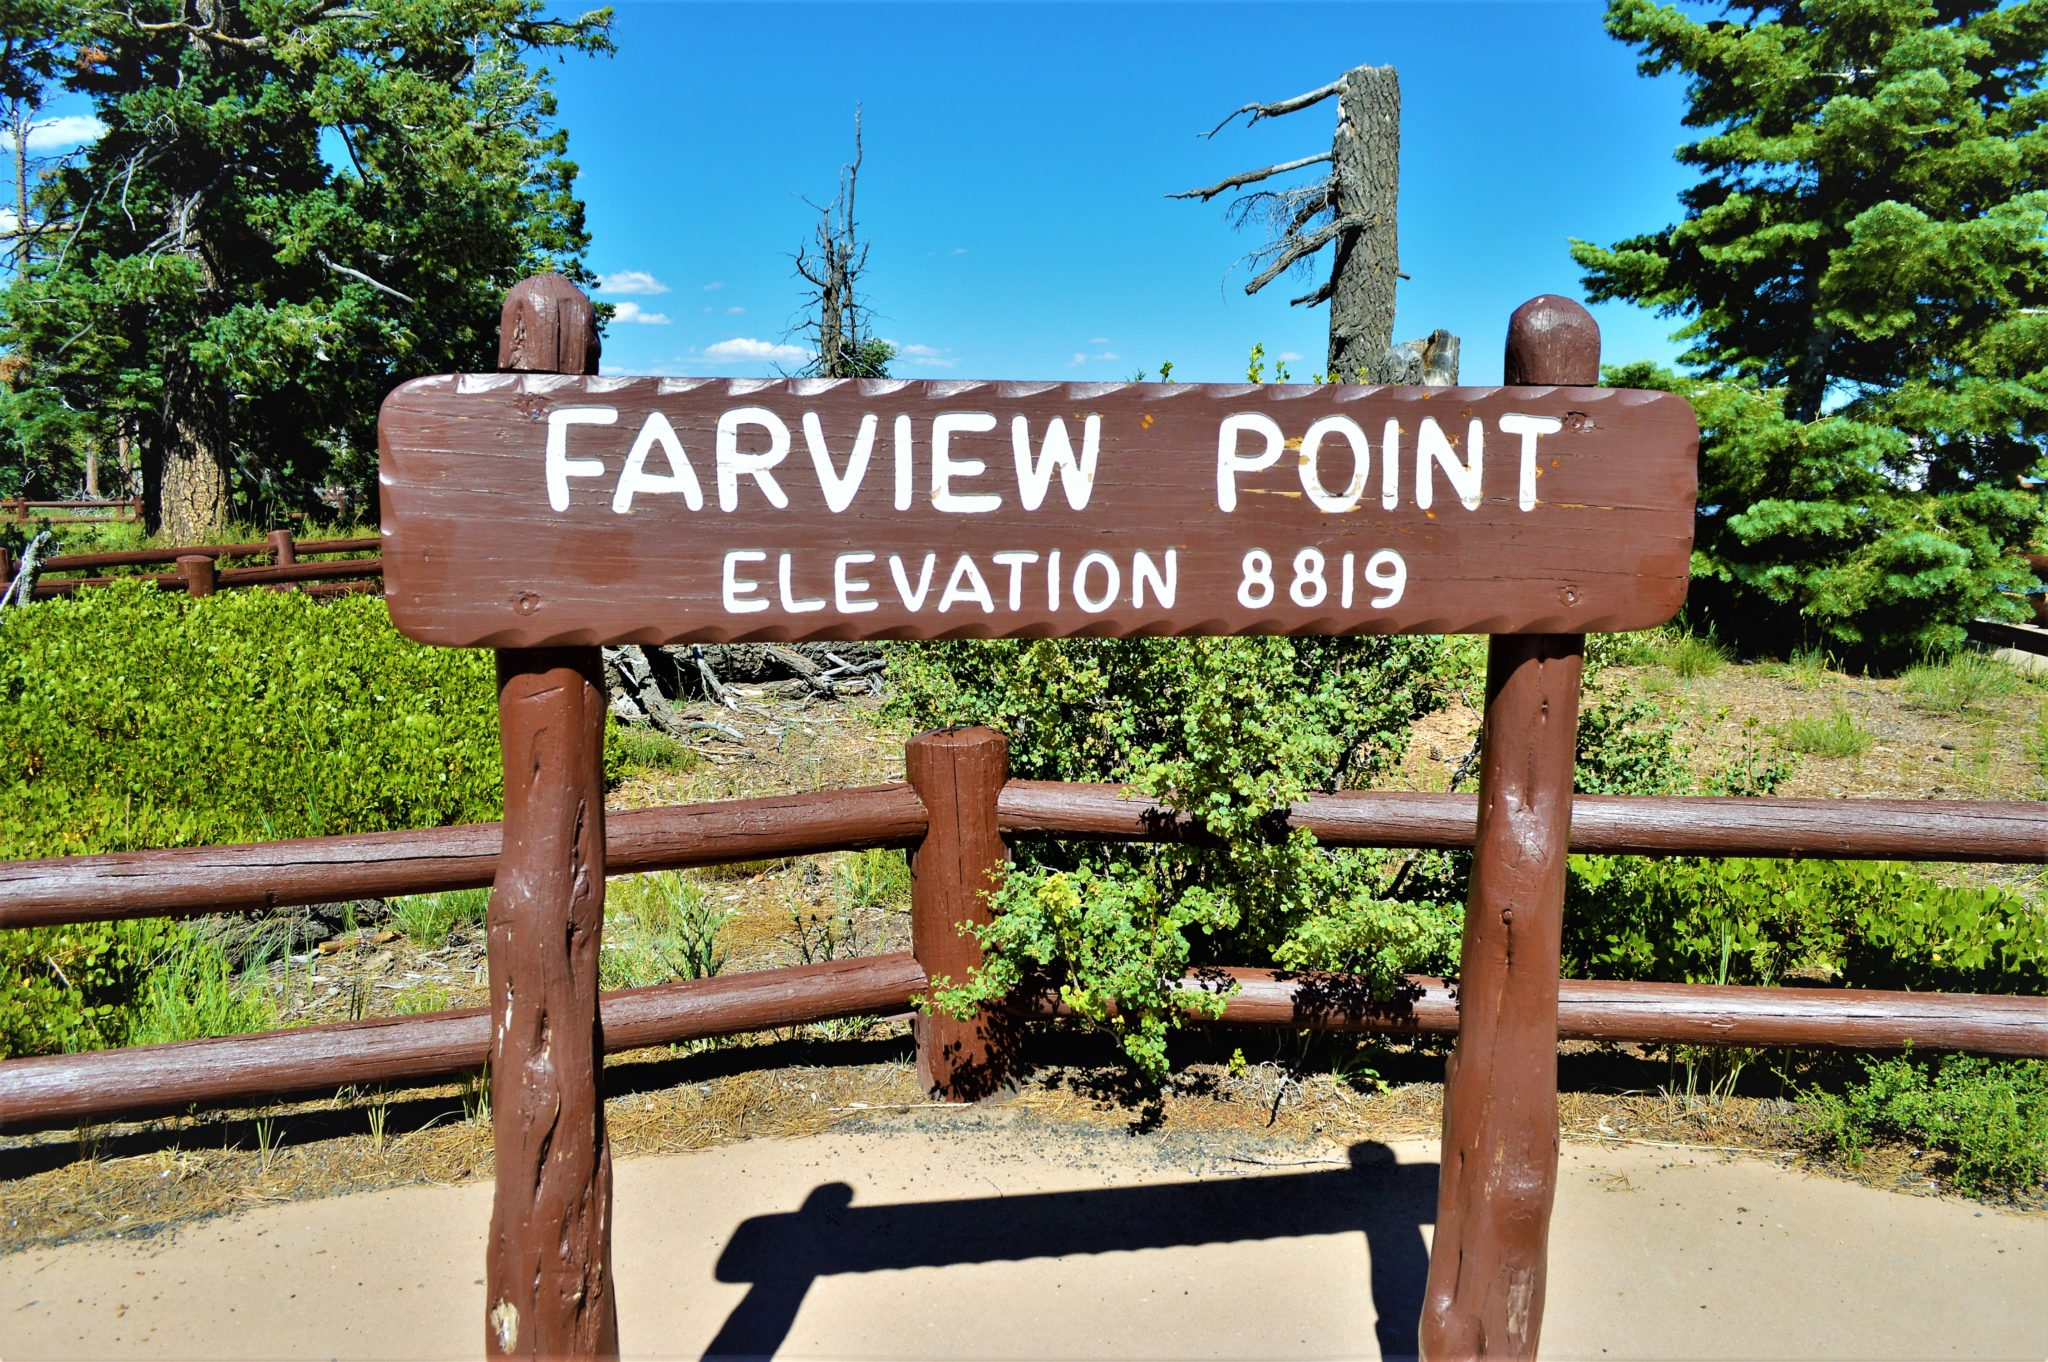 Farview Point sign, Bryce Canyon National Park, USA